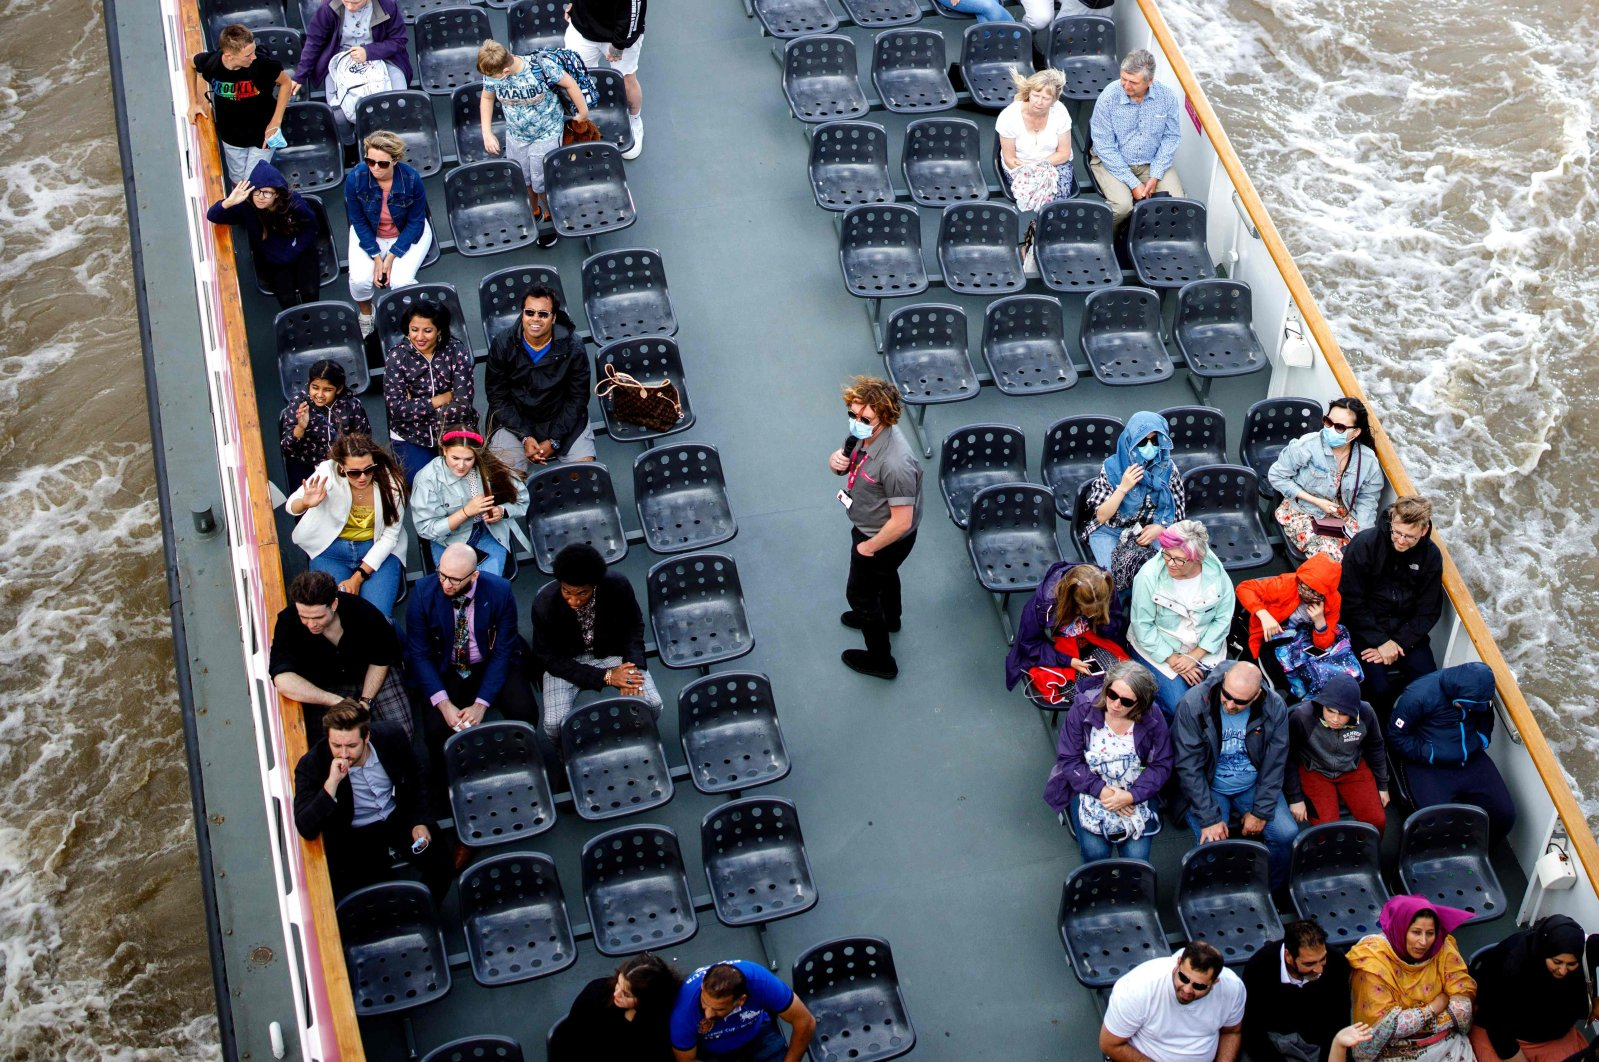 People enjoy a cruise tour on River Thames in central London, U.K., Aug. 24, 2020. (AFP Photo)